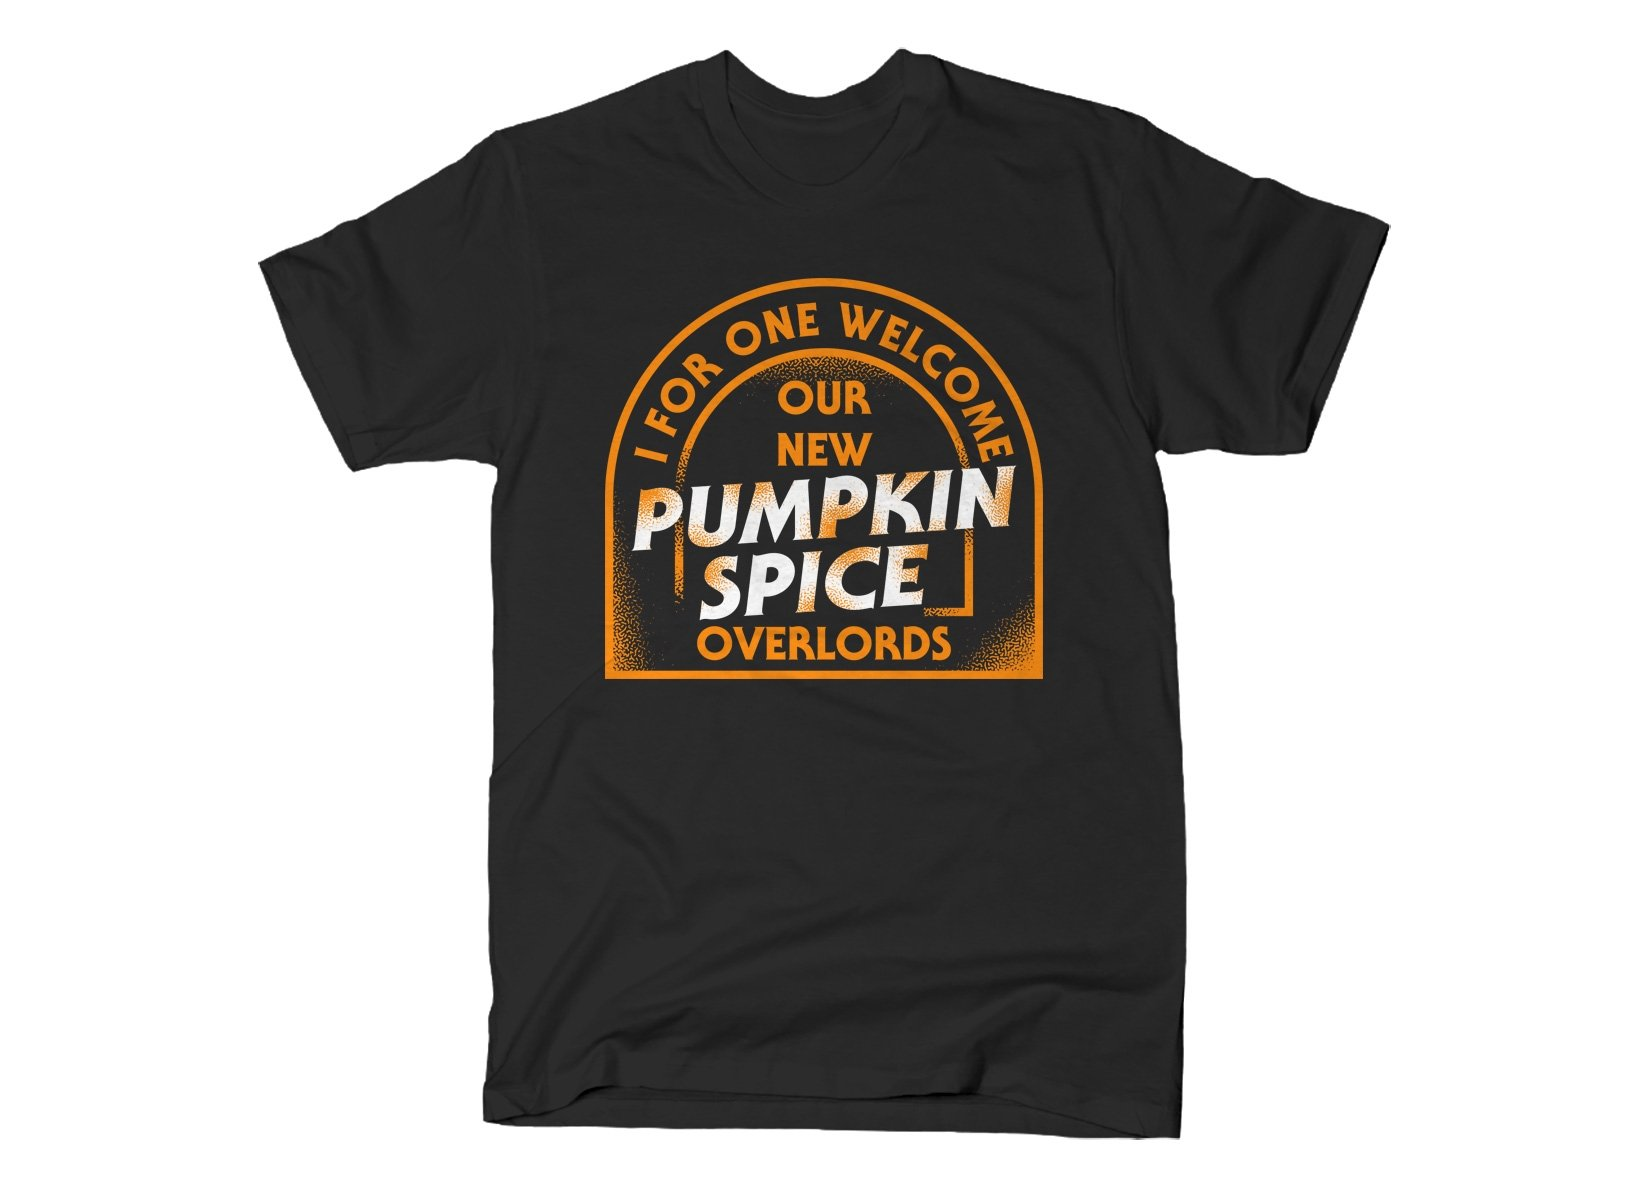 Pumpkin Spice Overlords on Mens T-Shirt